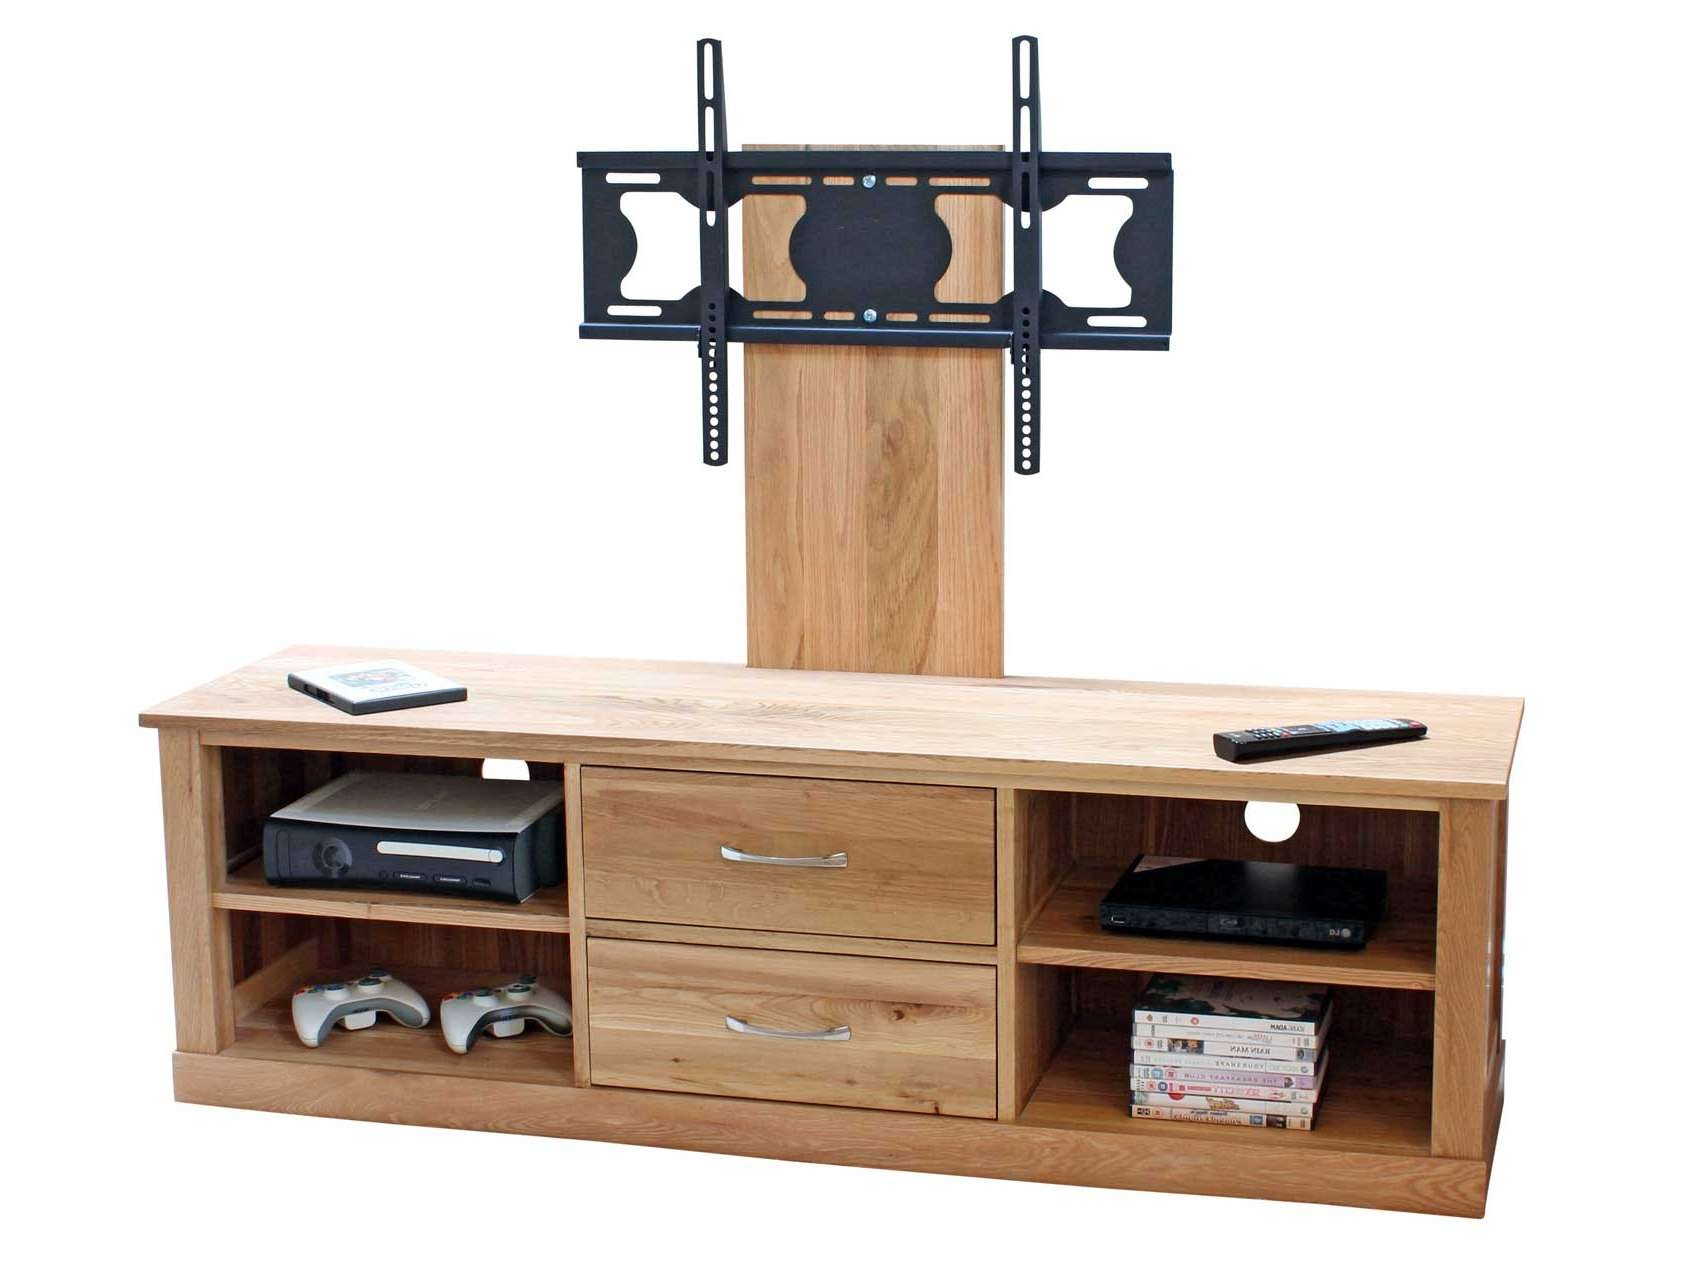 Oak Wooden Tv Stand With Mount For Flat Screen Of 14 Gorgeous Intended For Corner Tv Stands With Bracket (Gallery 5 of 20)